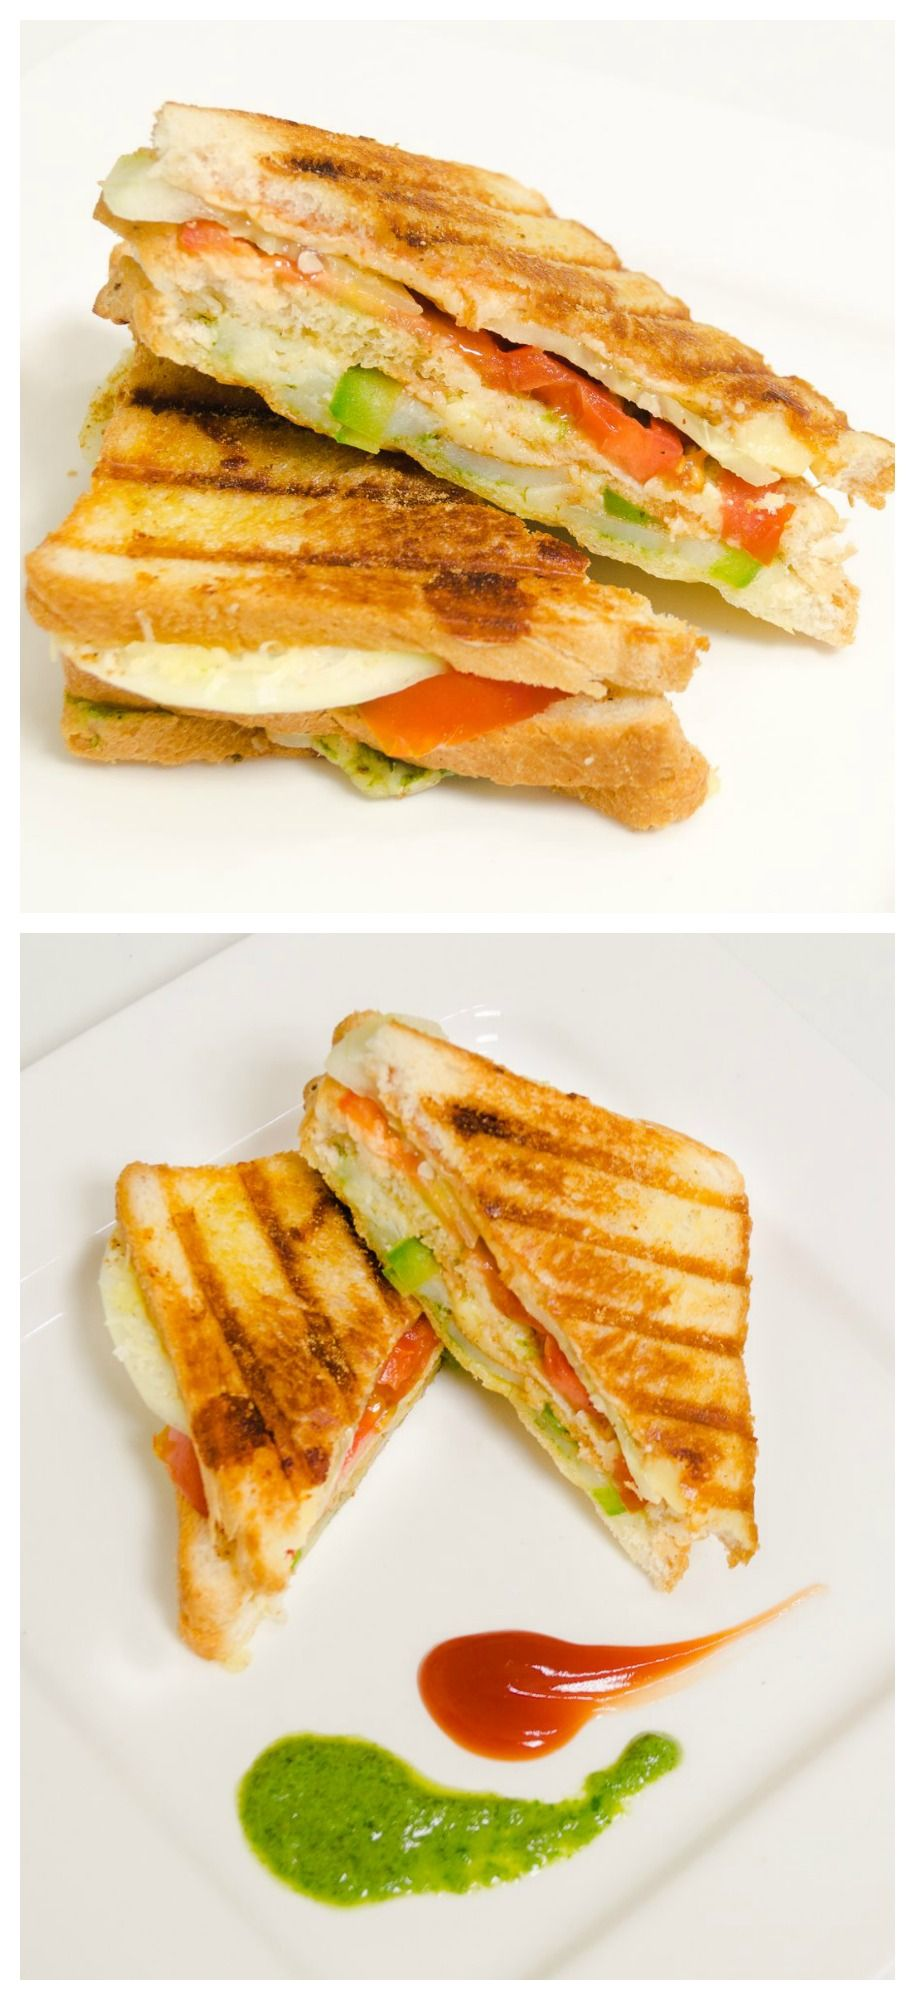 Veg #Grill #Sandwich - Double Decker - Quick And #Easy Indian #Street Style